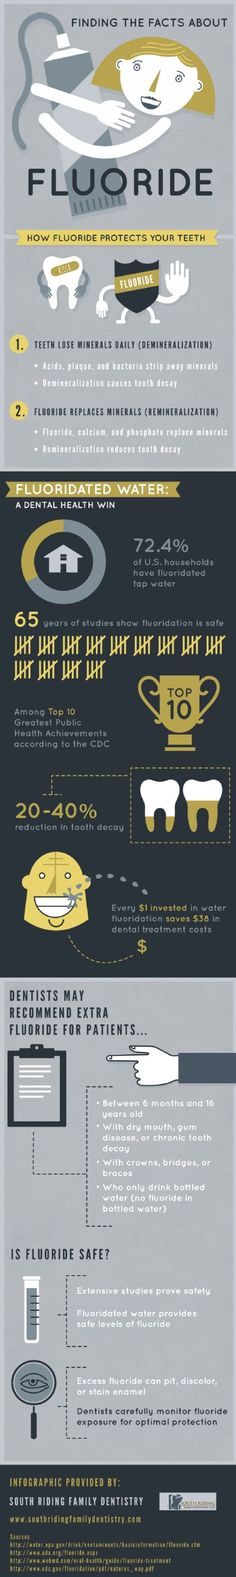 #Fluoride Facts for #Dentist and #Hygienist